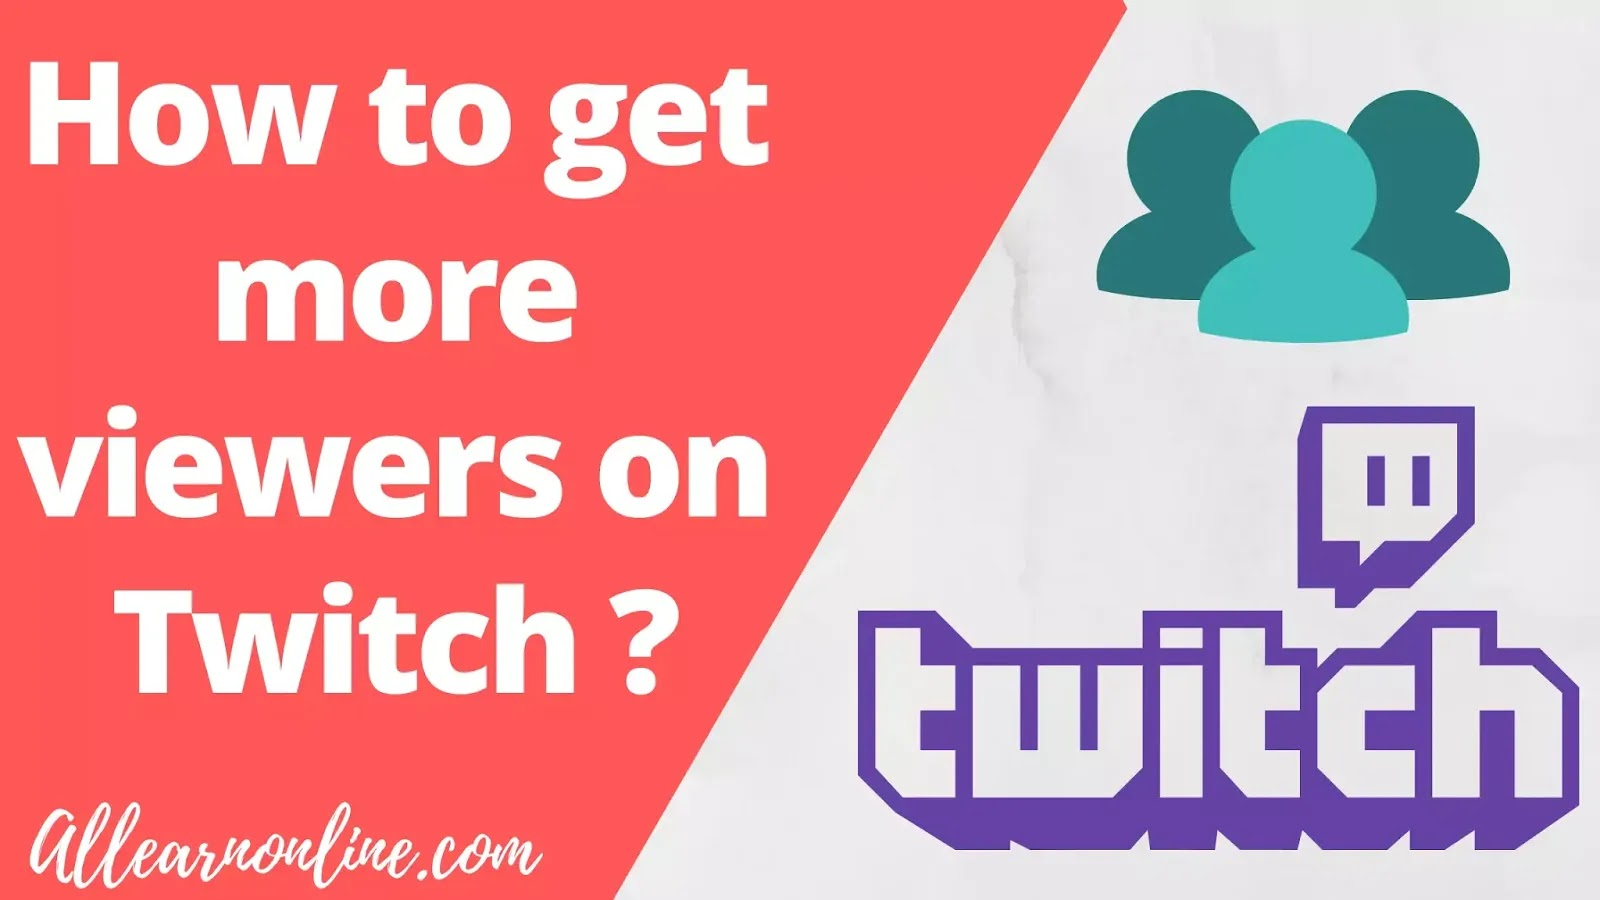 How to get more viewers on Twitch ?